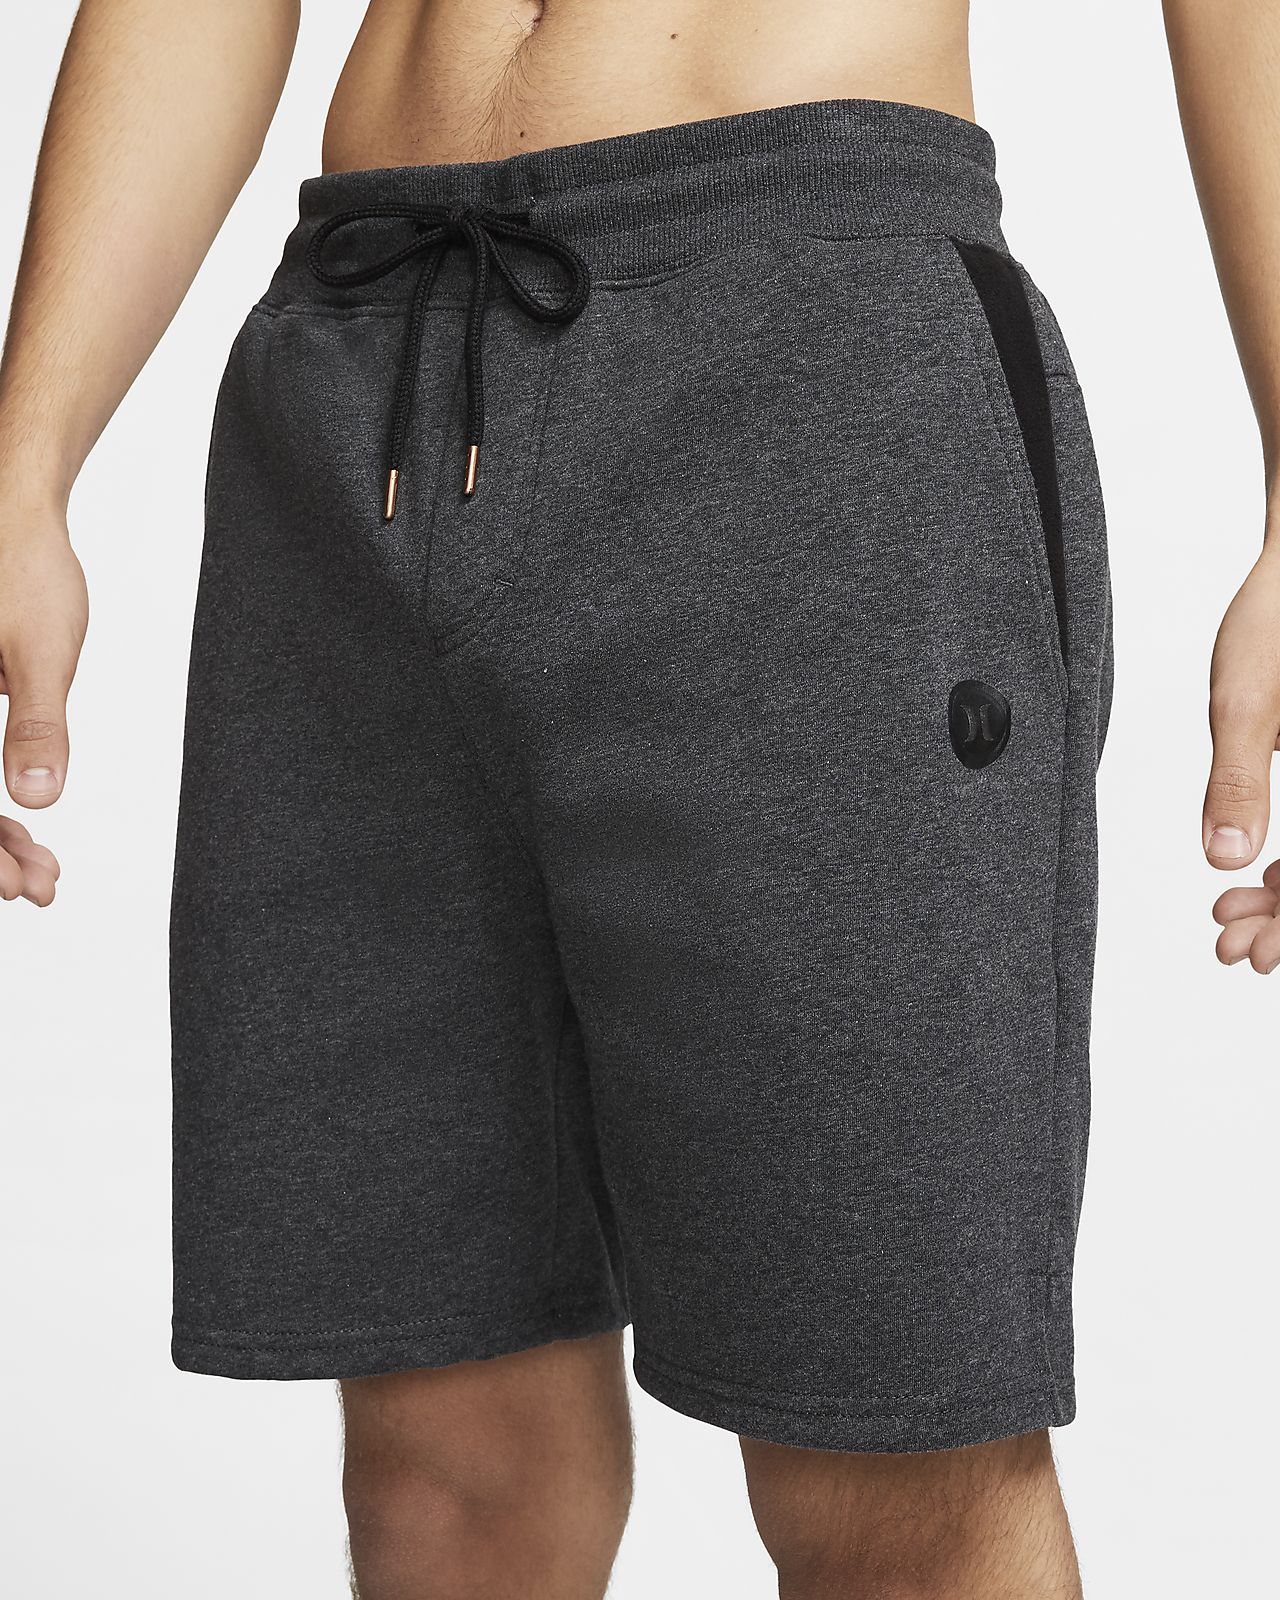 Hurley Therma Protect Fleece Men's Shorts